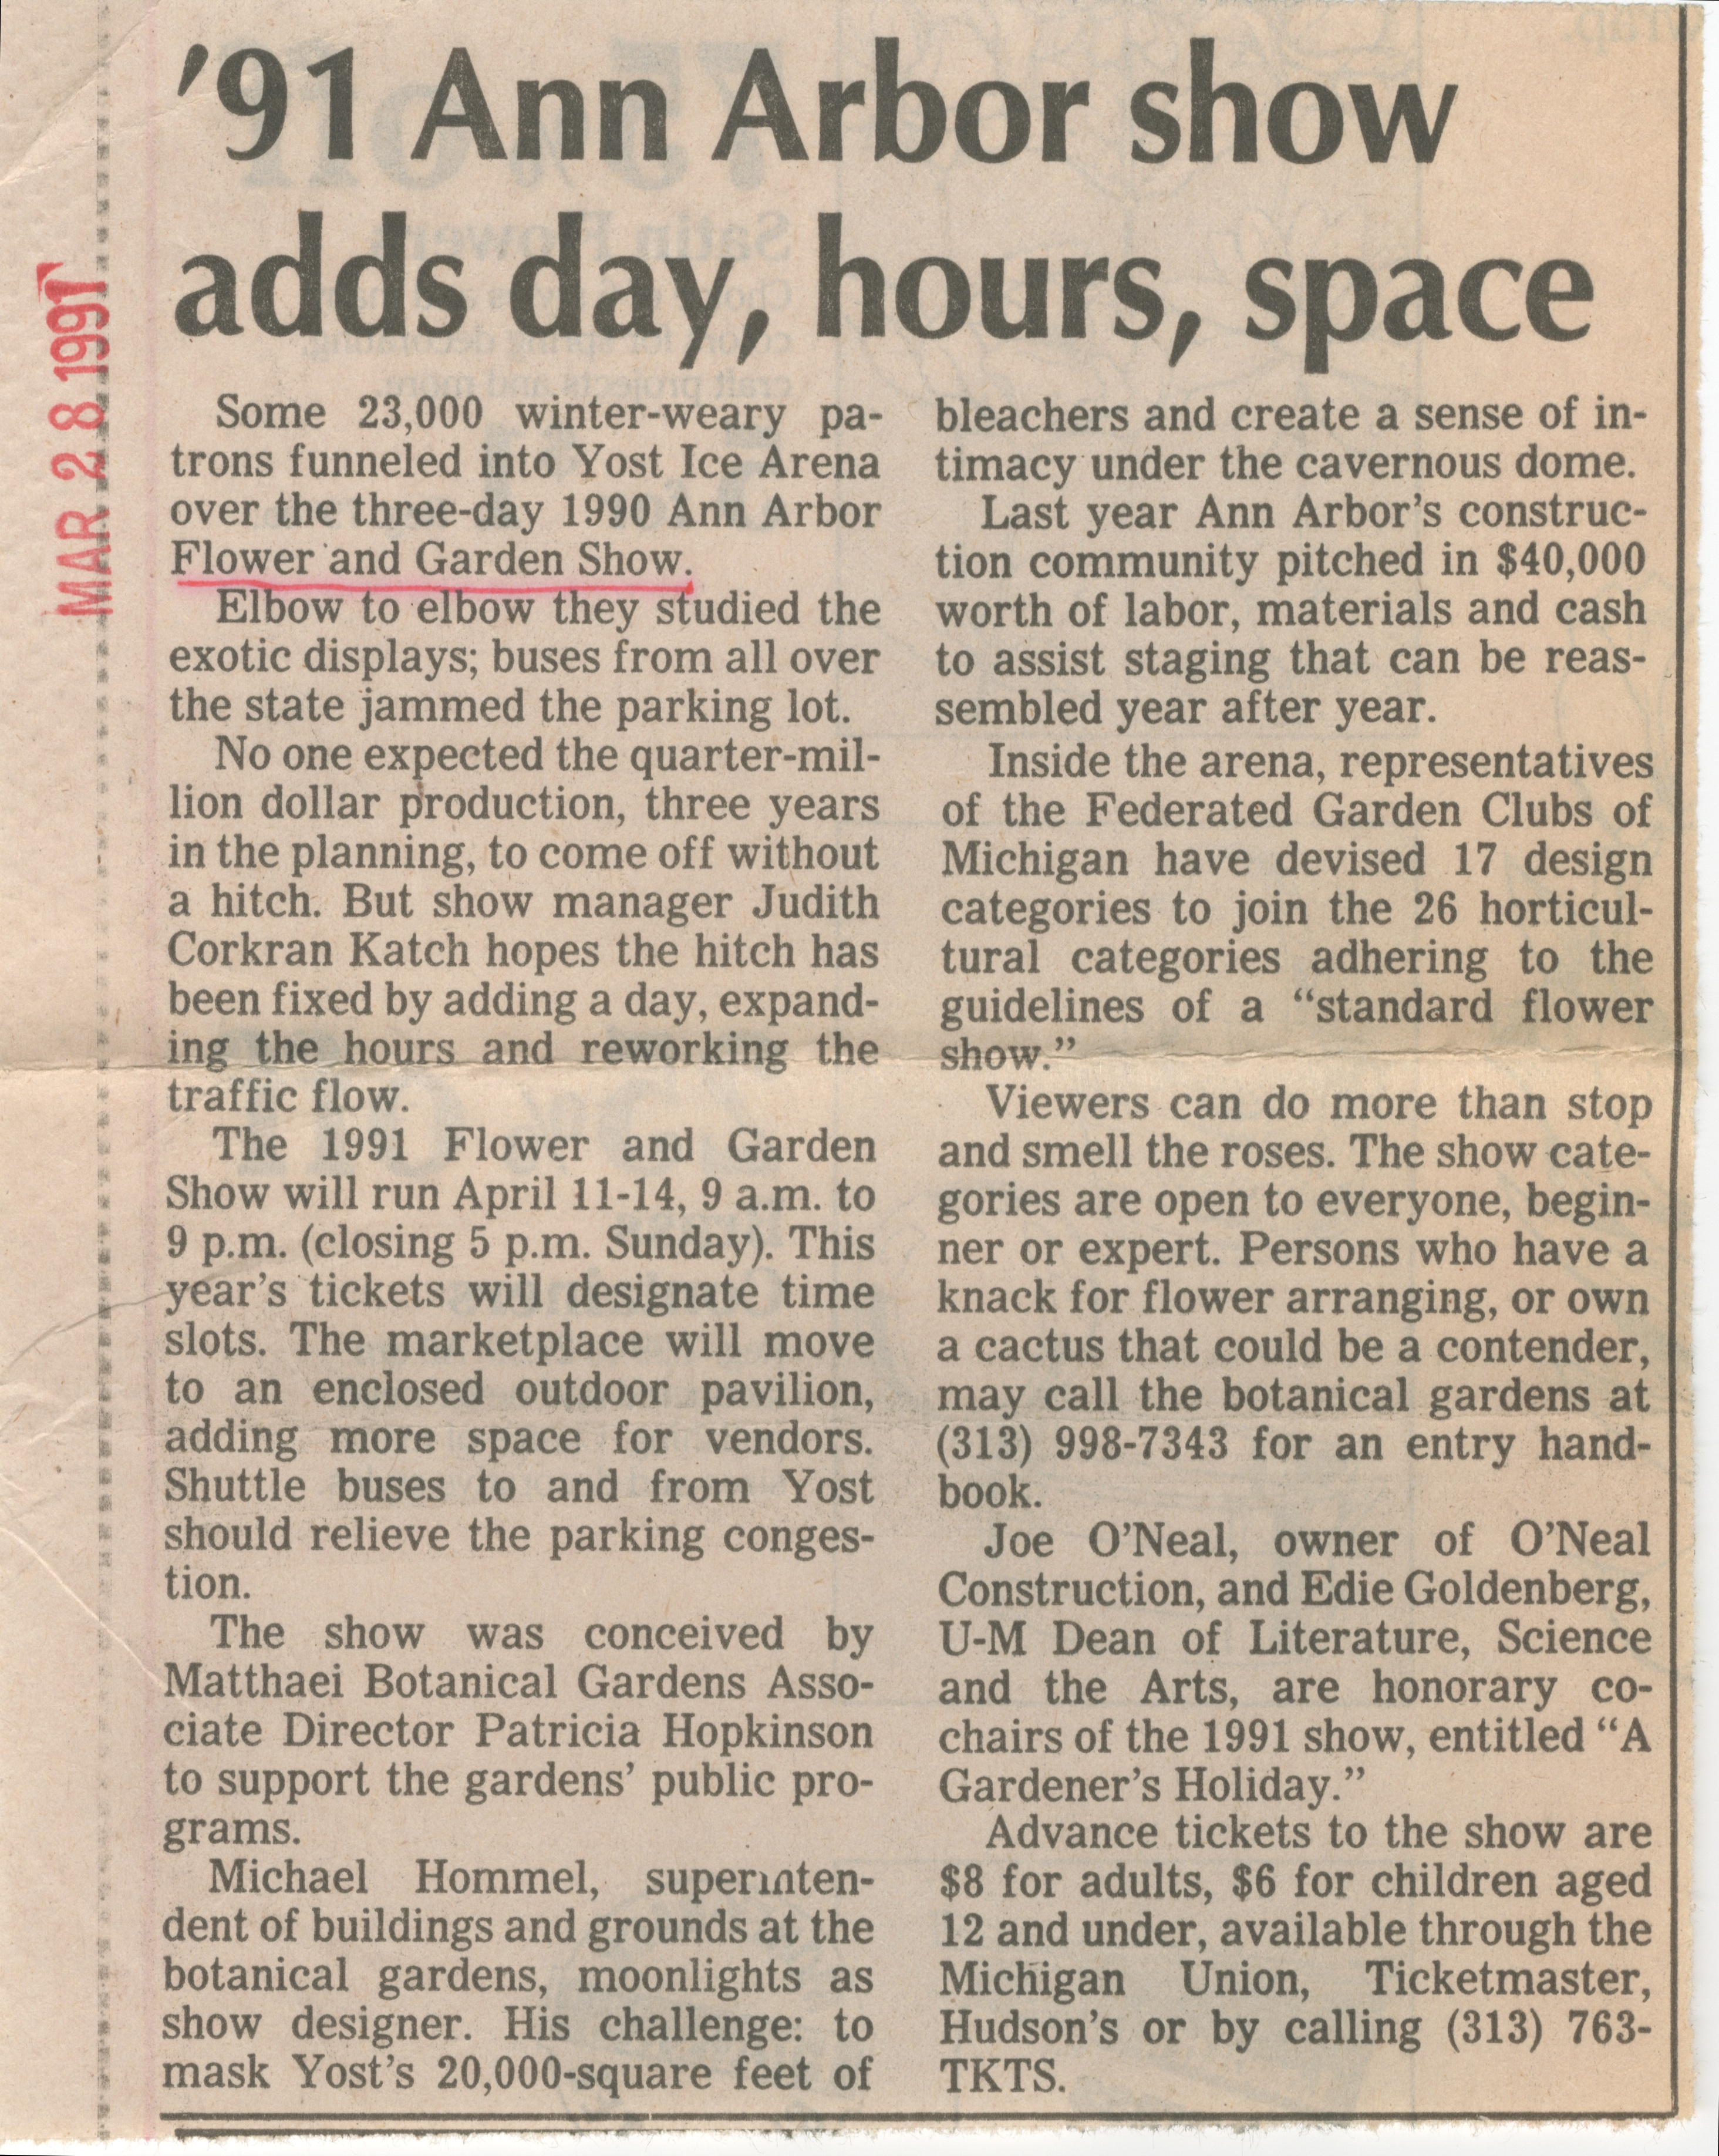 '91 Ann Arbor Show Adds Day, Hours, Space image